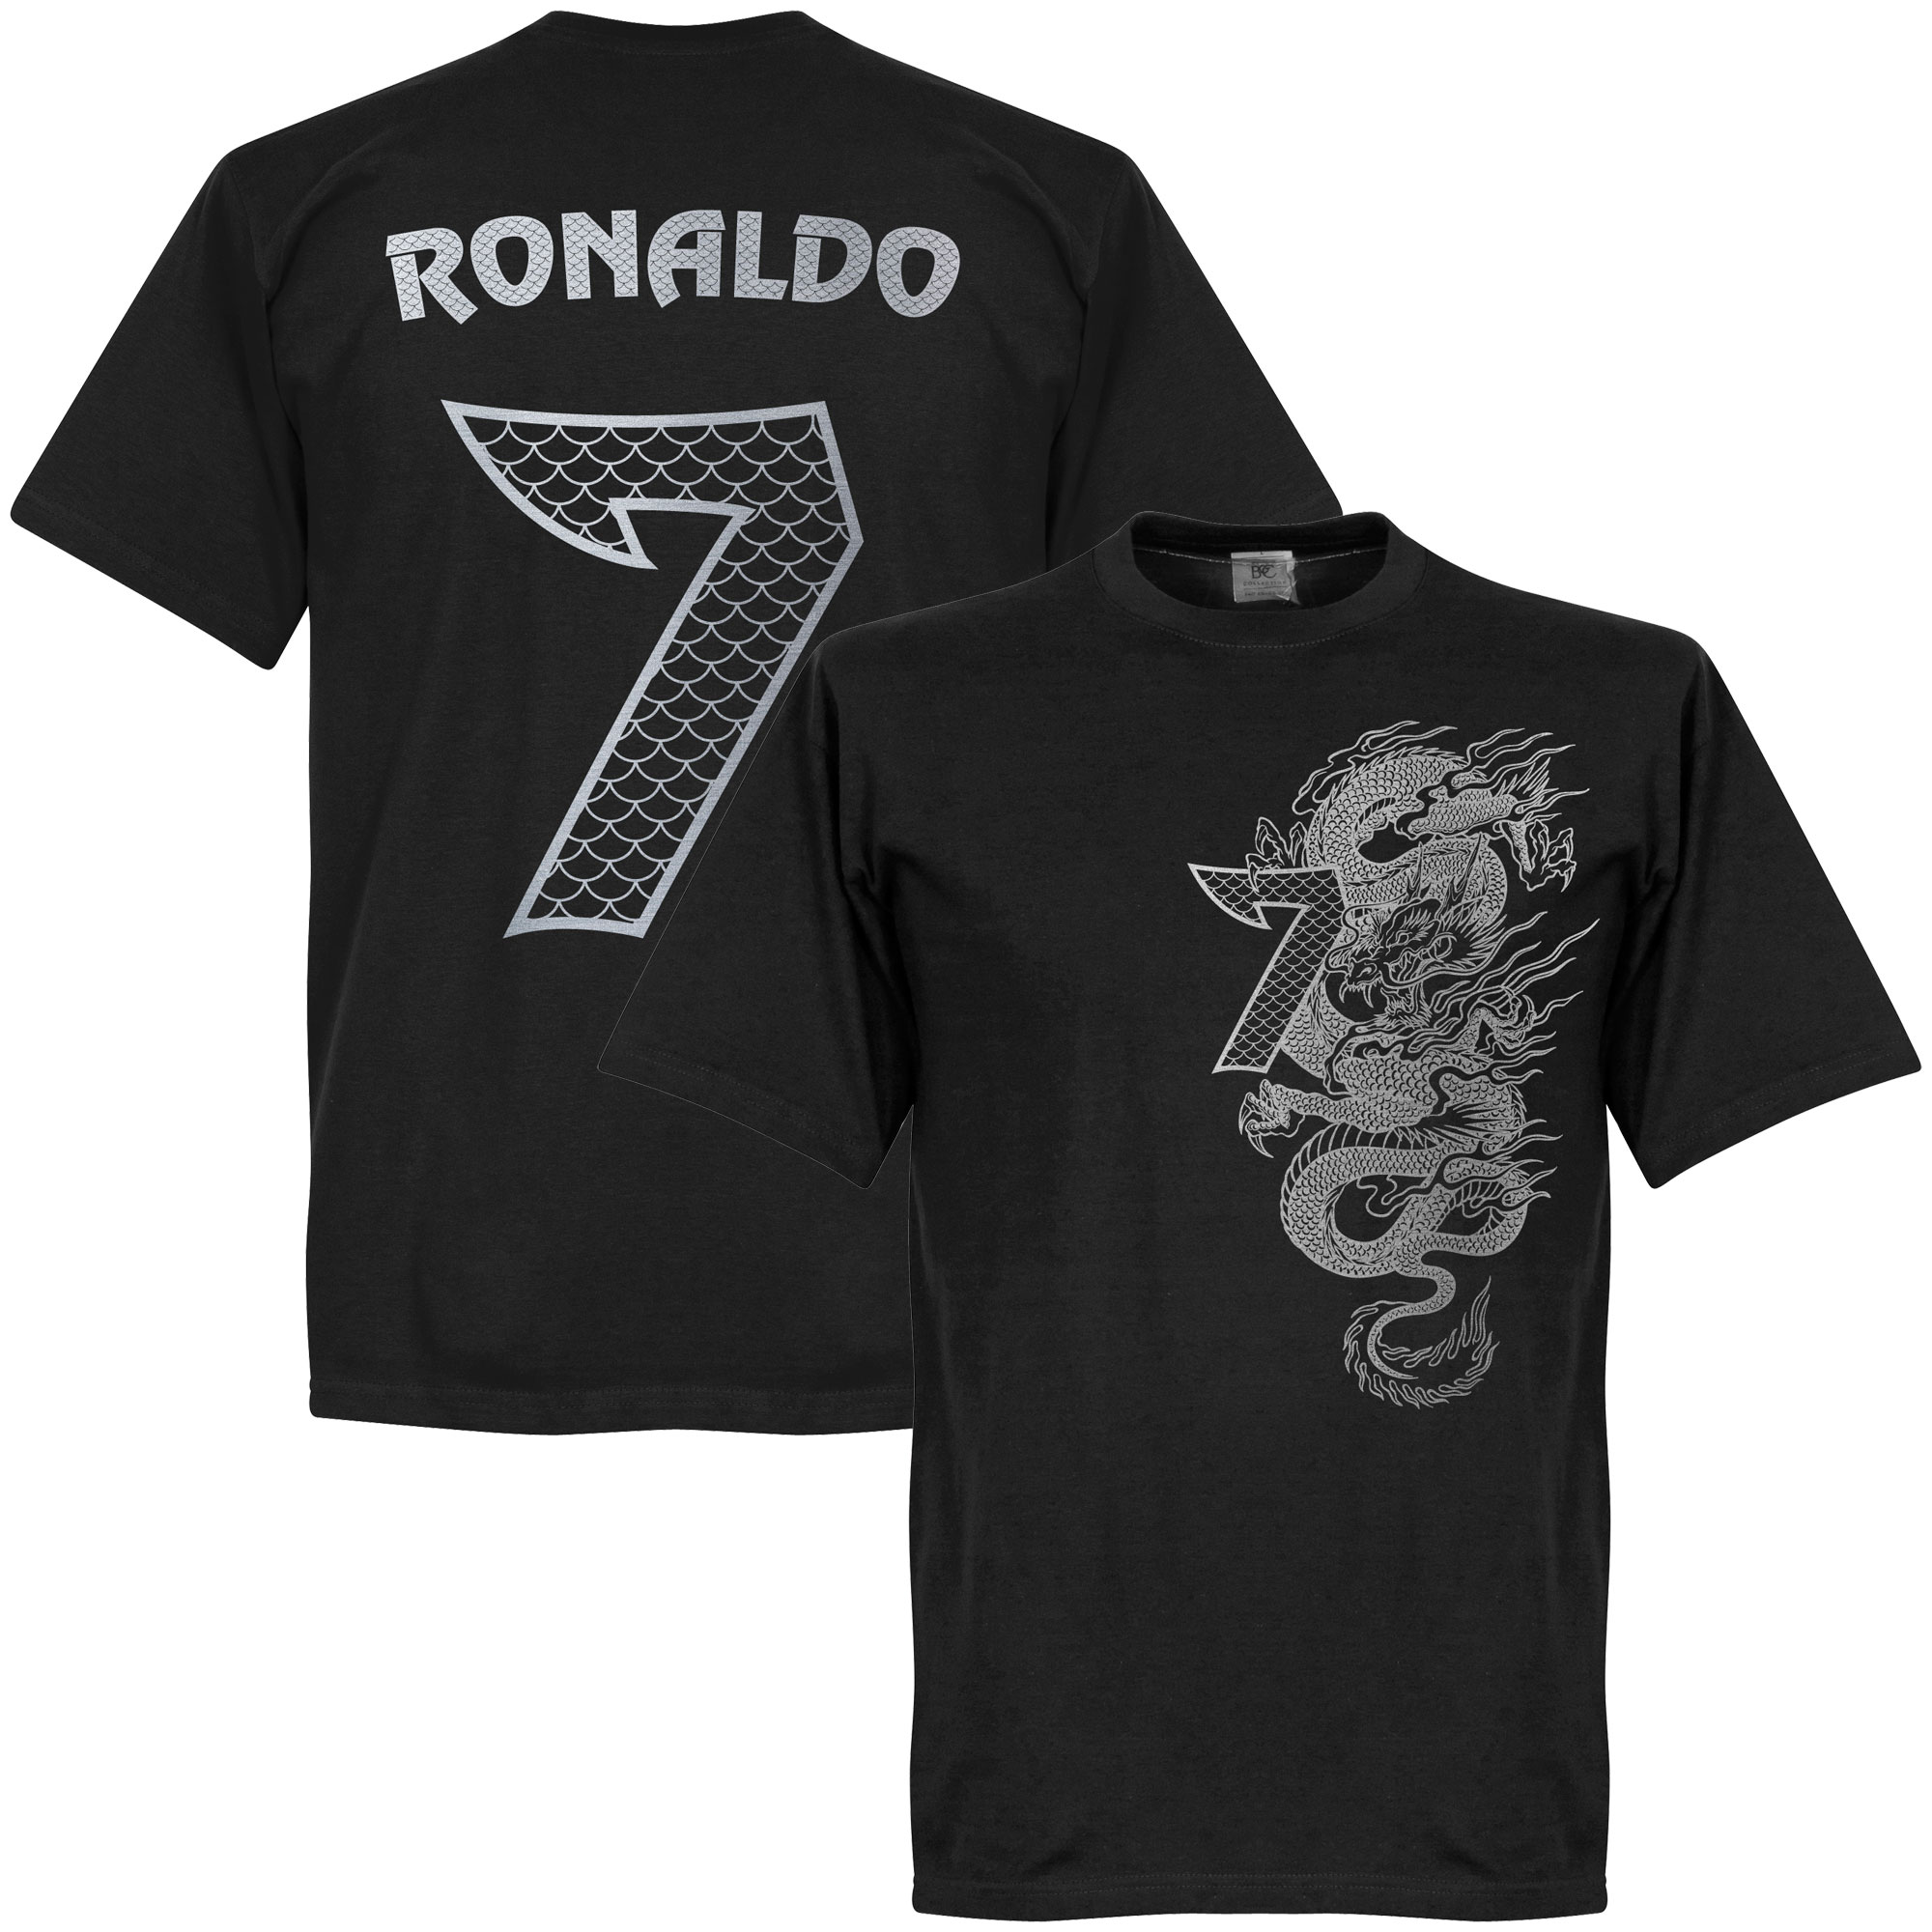 Ronaldo 7 Dragon Tee - Black/Silver - XL